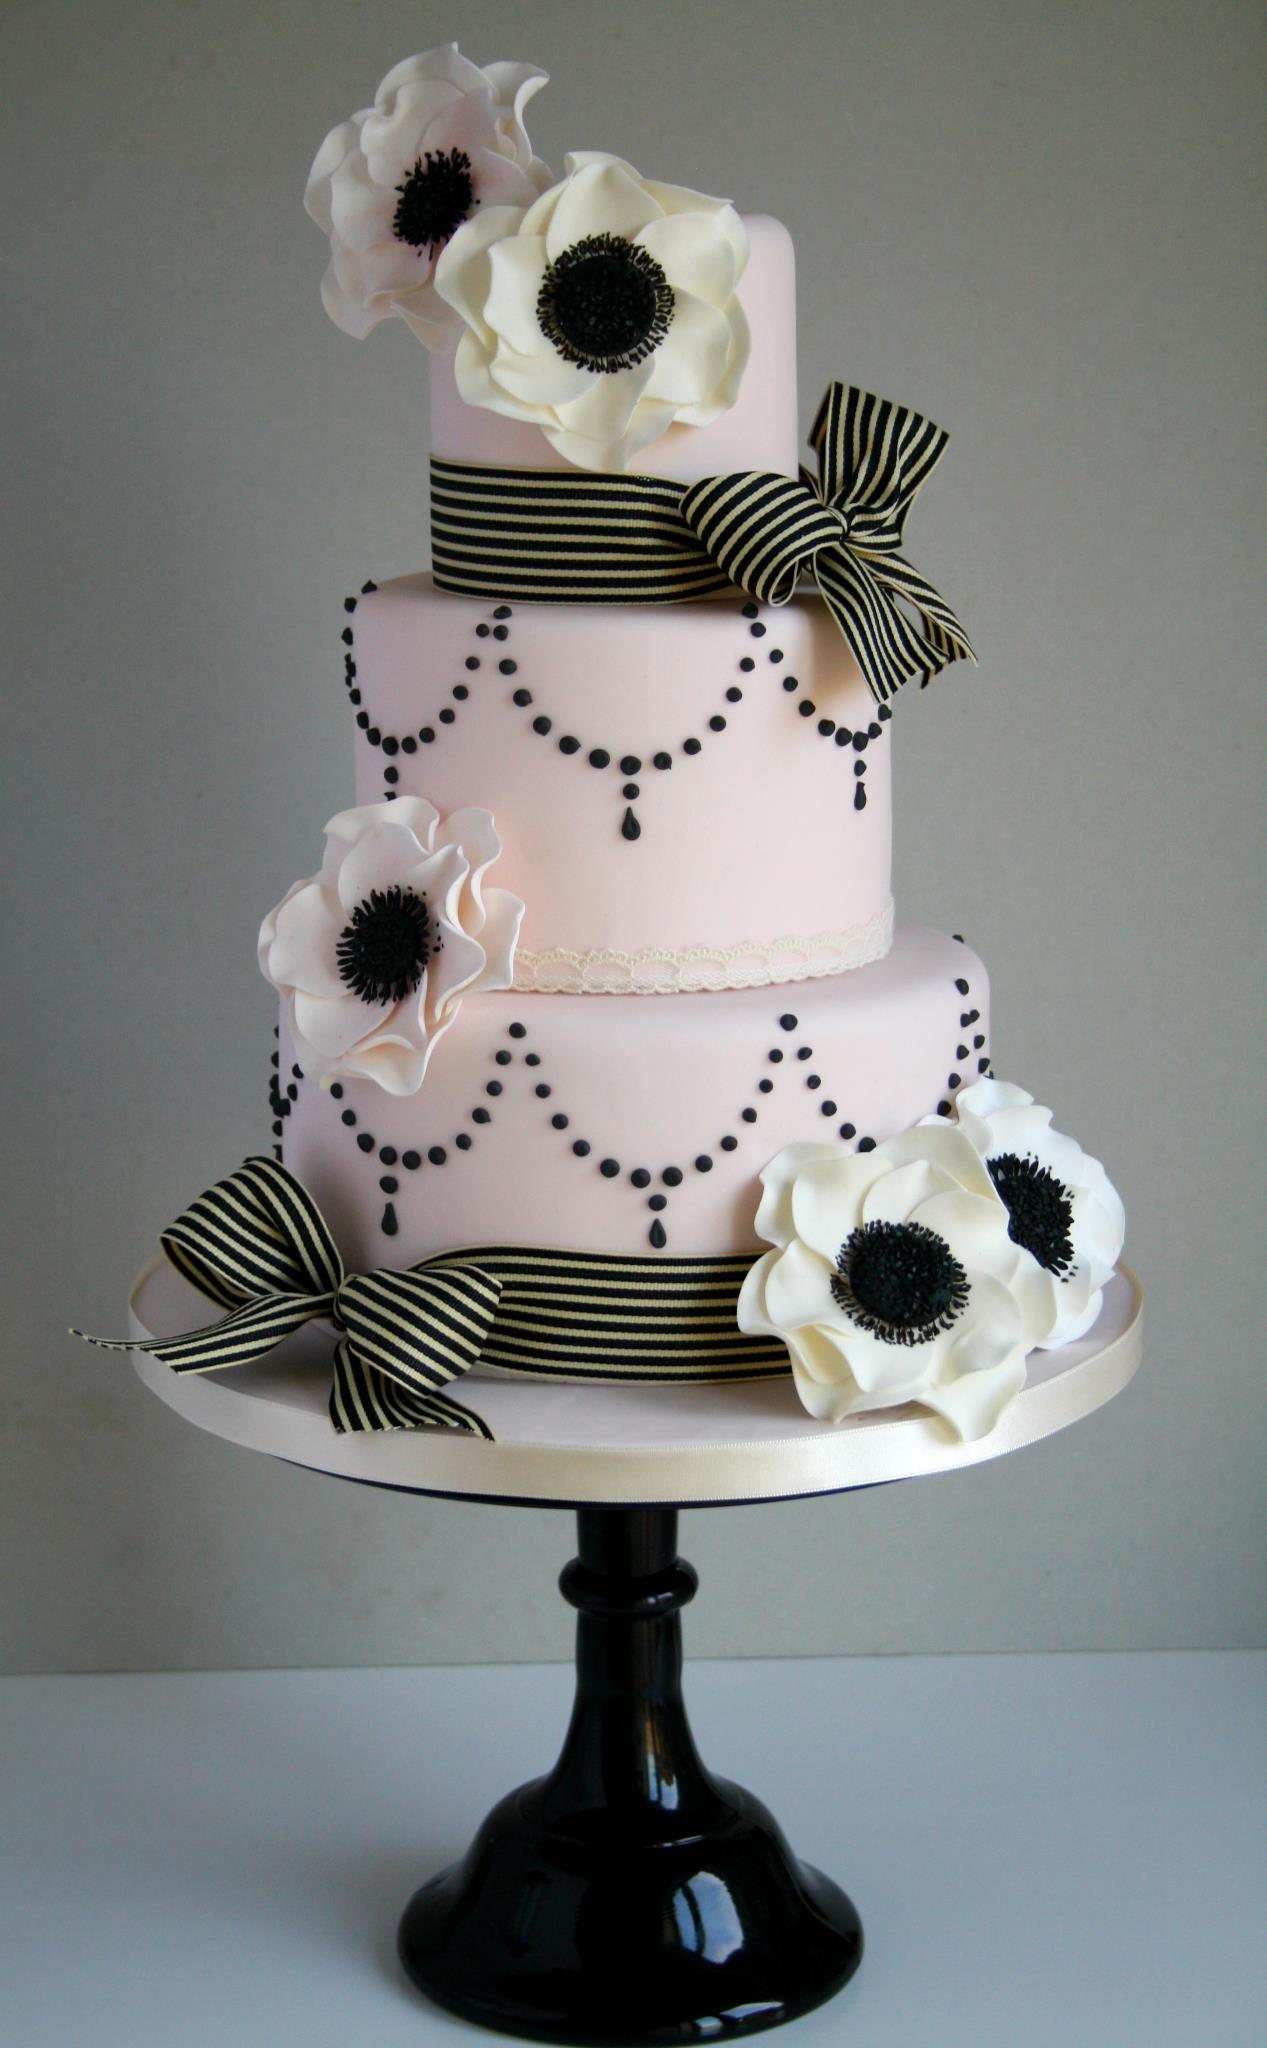 wedding-cake-ideas-27-06202014nz